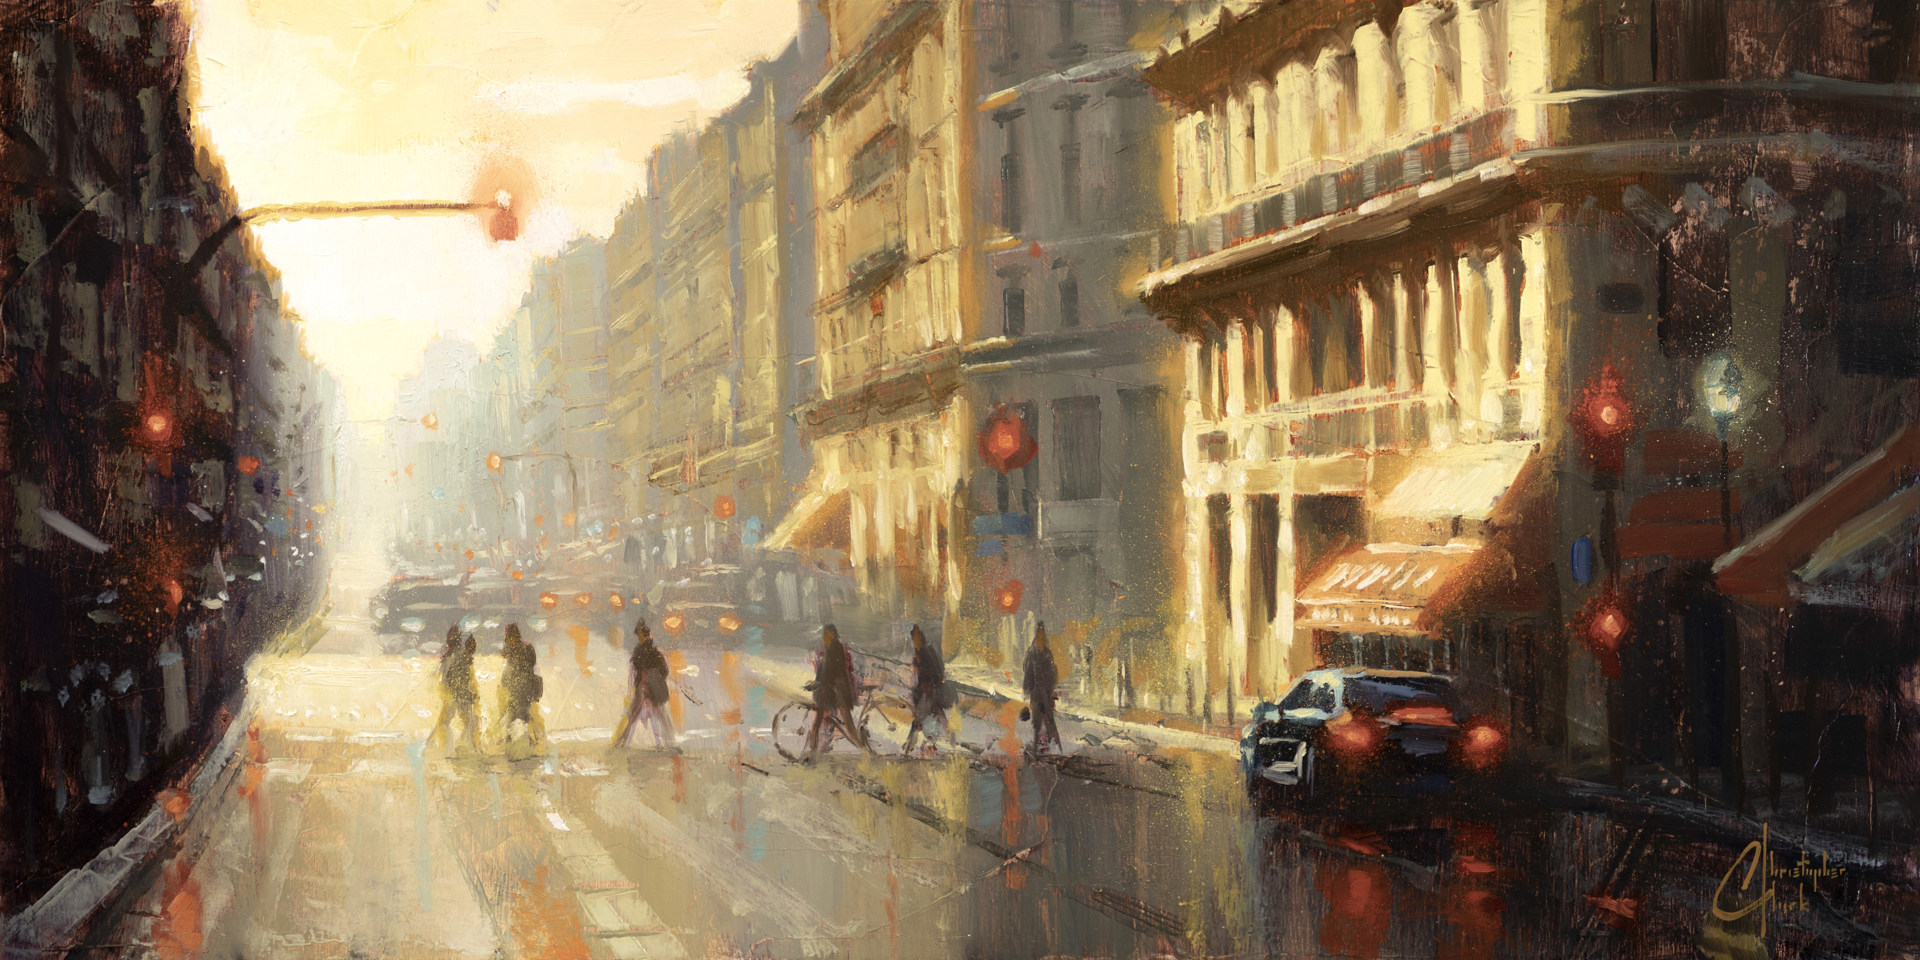 Paris - Crossing the Street by Christopher Clark